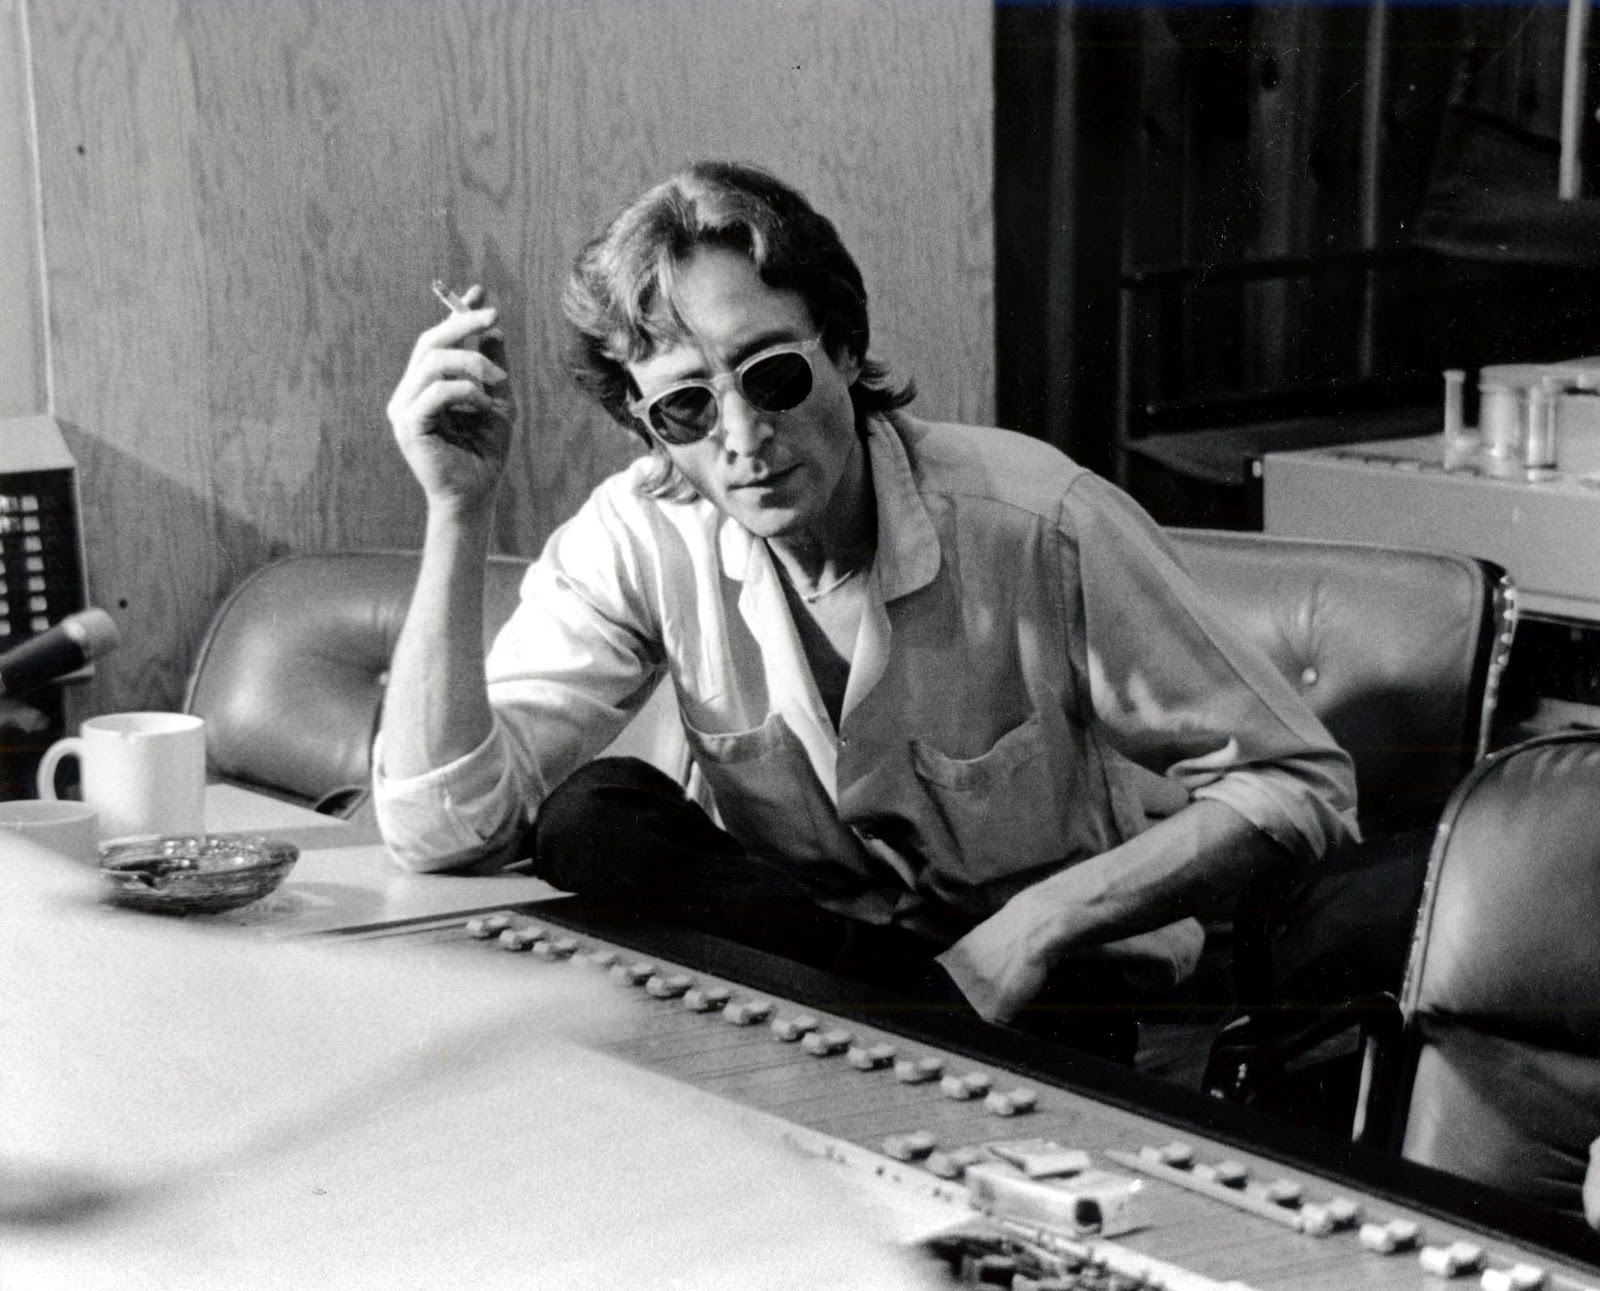 John Lennon was born on October 9, 1940, and on December 8, 1980, he was shot